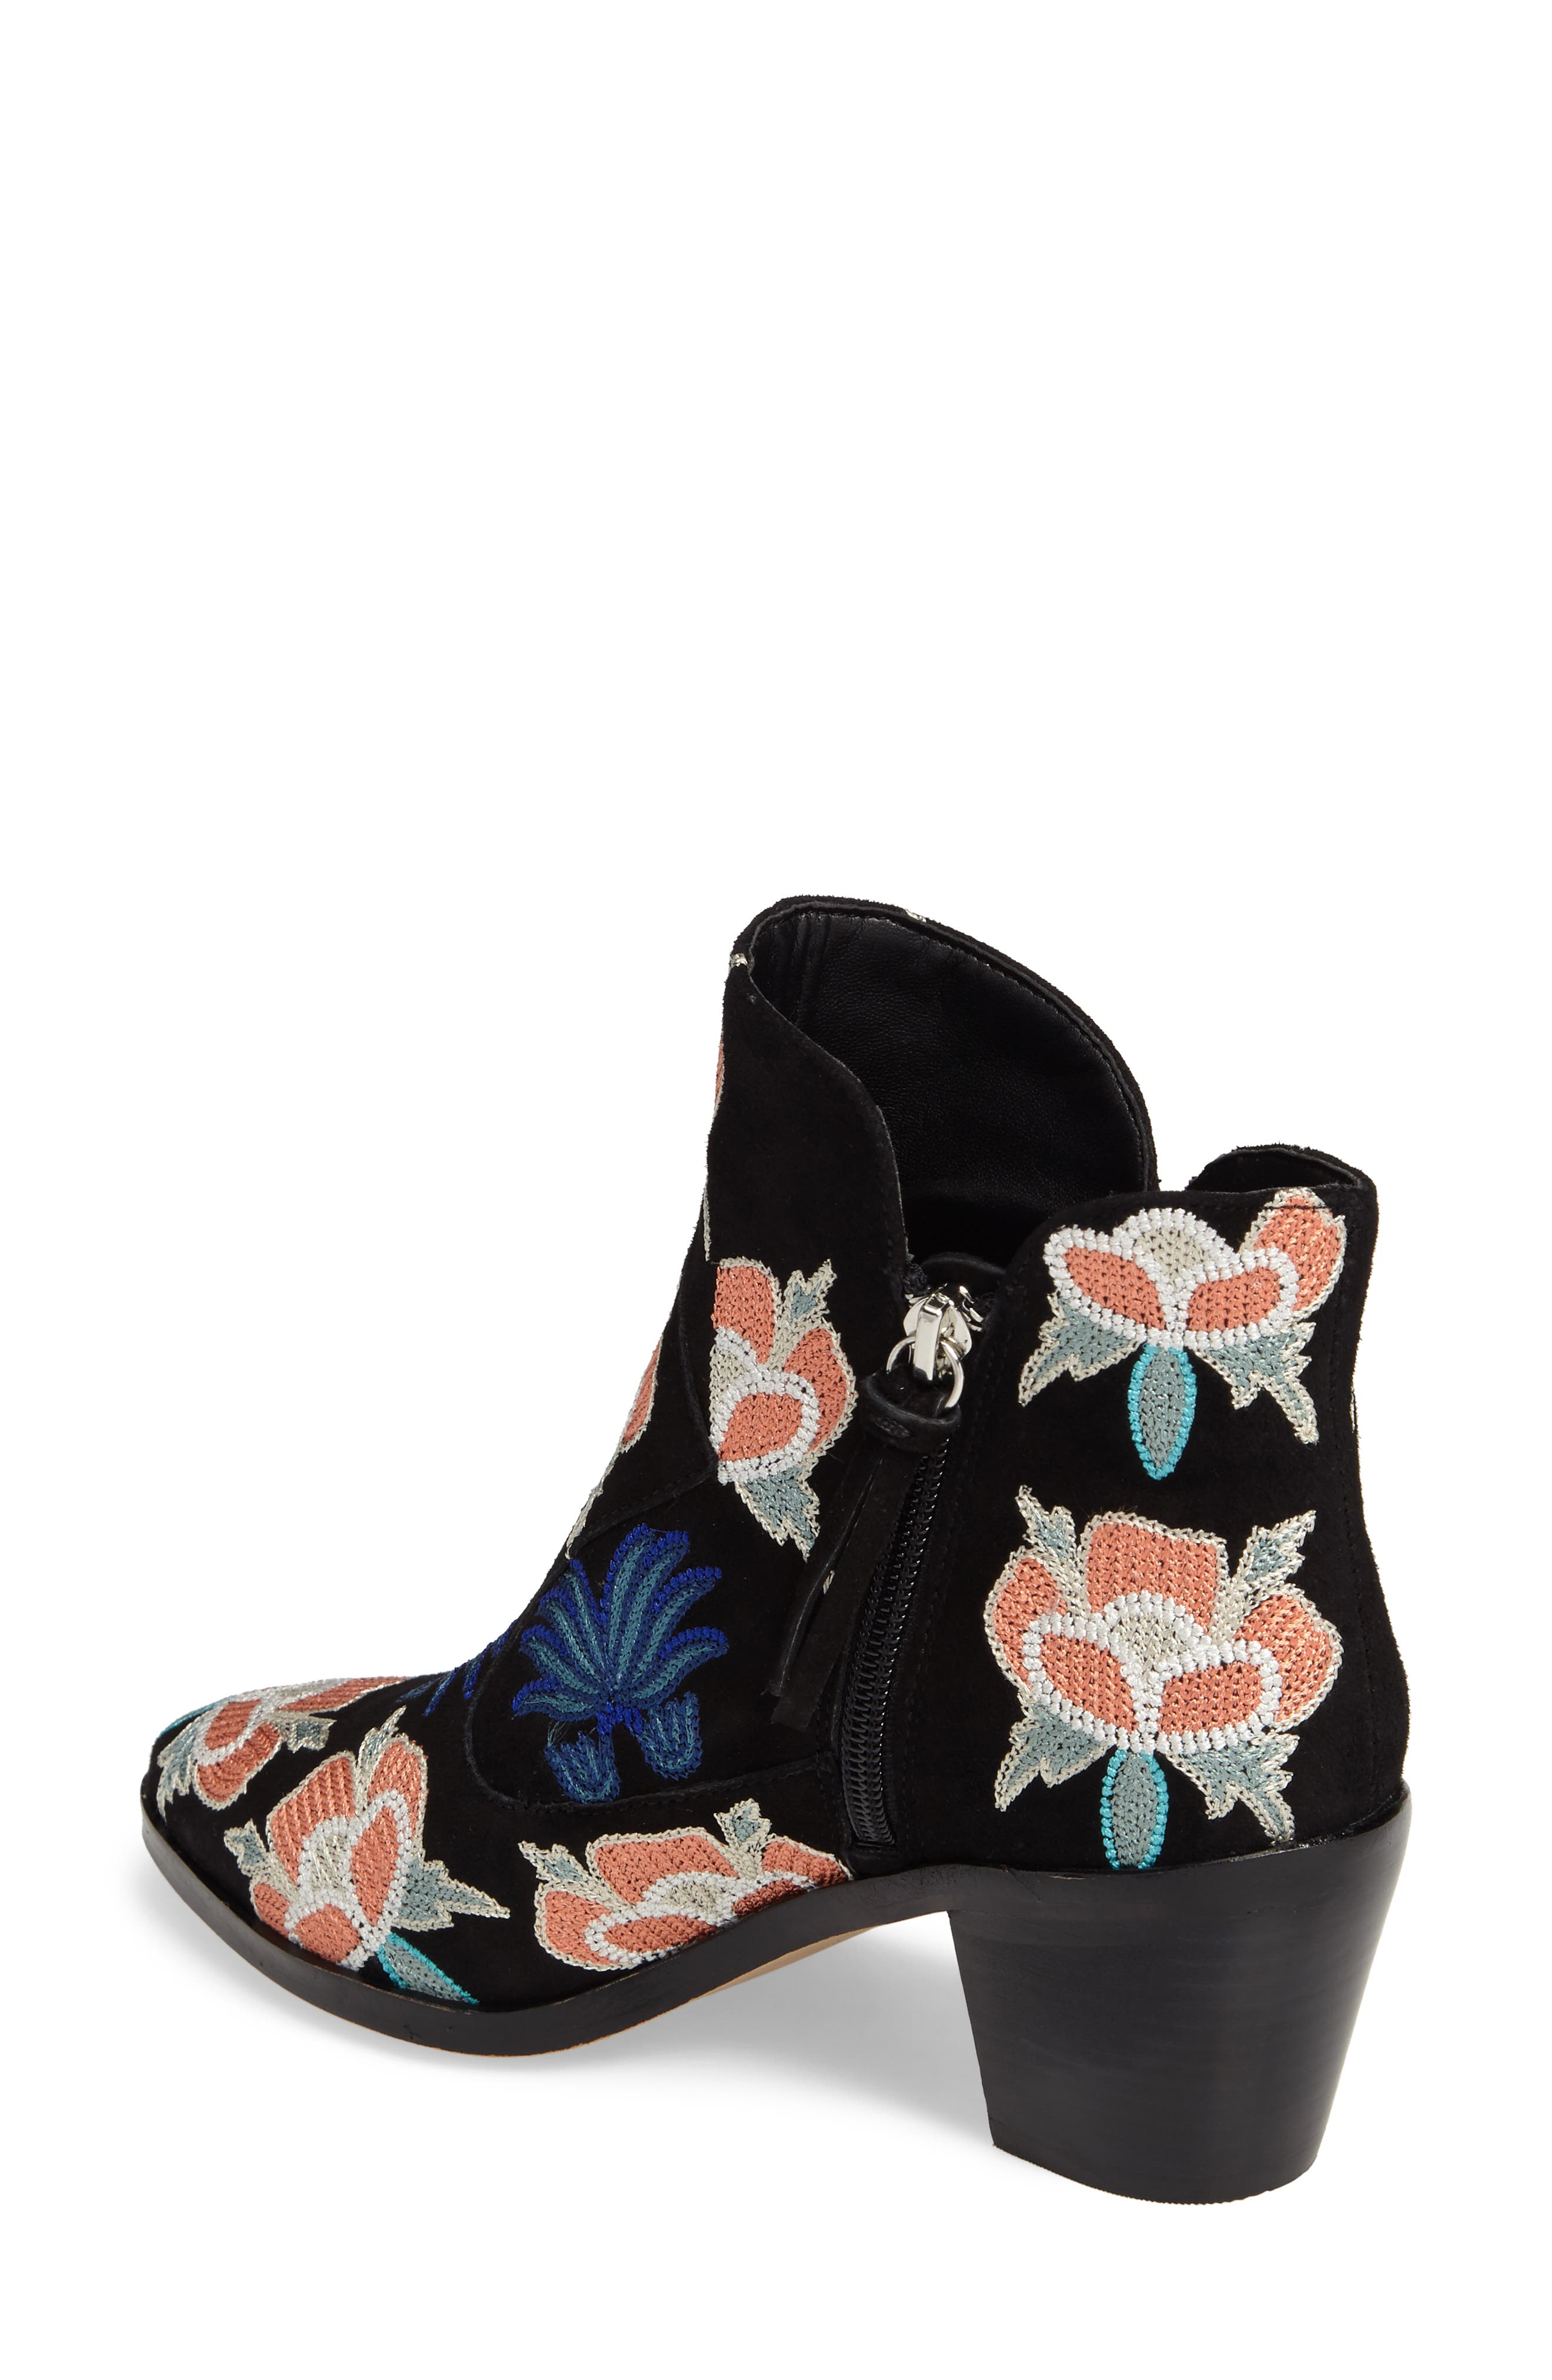 Lulu Too Flower Embroidered Bootie,                             Alternate thumbnail 2, color,                             004